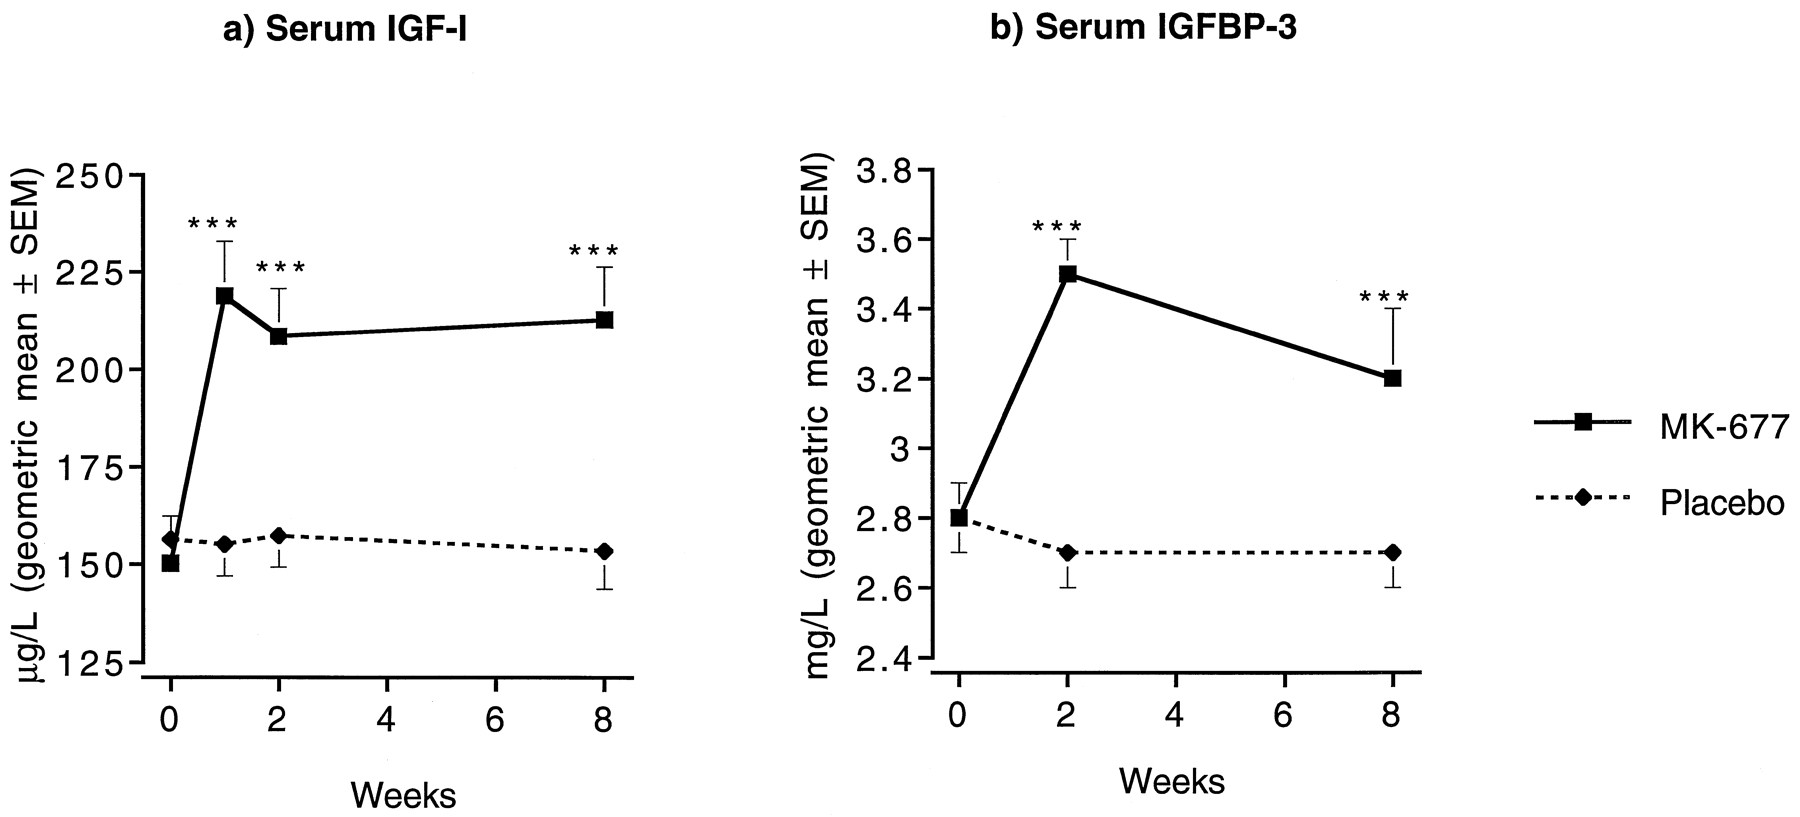 Serum concentrations of IGF-1 and IGFBP-3 during 2-month treatment with MK-677 (25 mg) or placebo daily in obese males